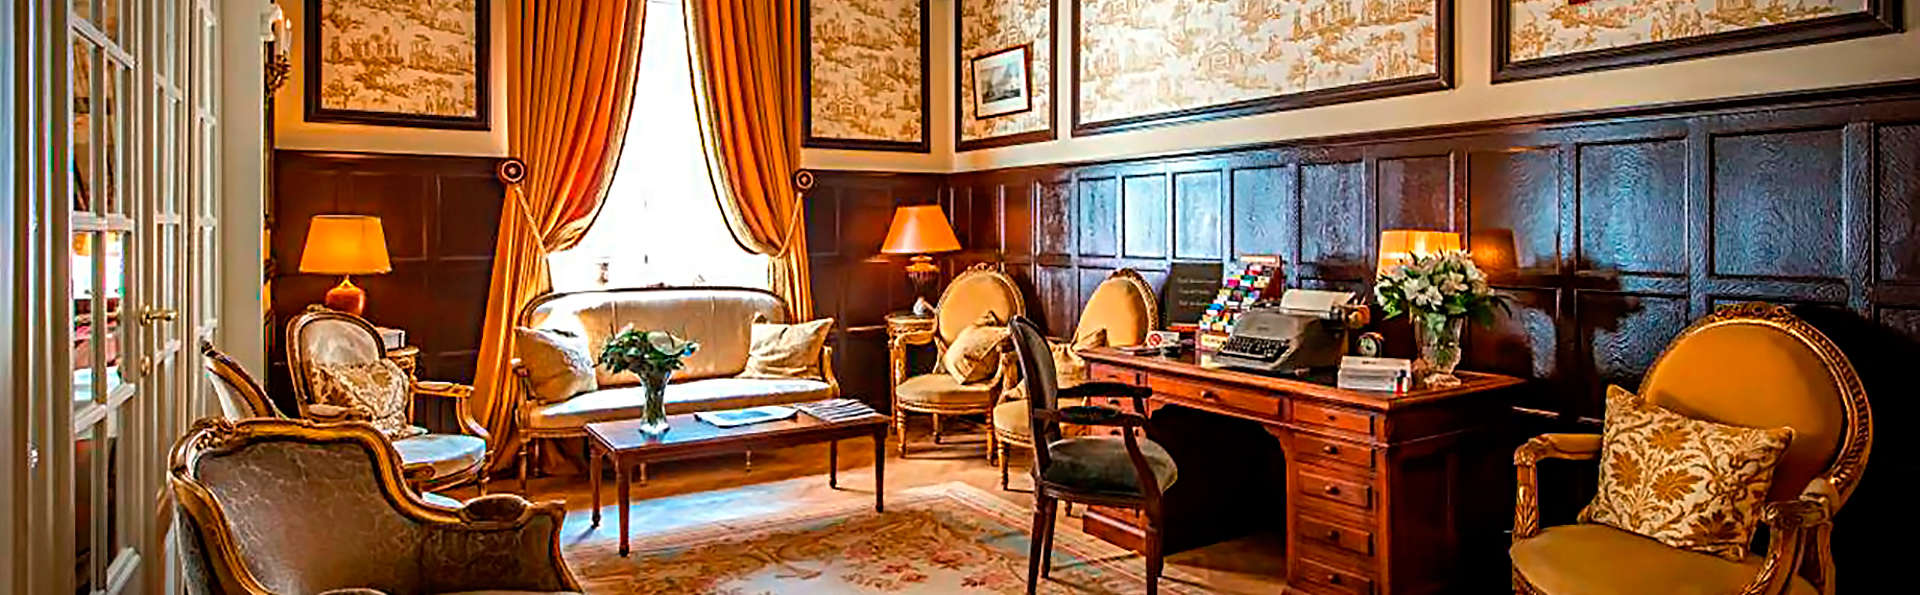 Relais & Châteaux Hotel Heritage - EDIT_lobby.jpg